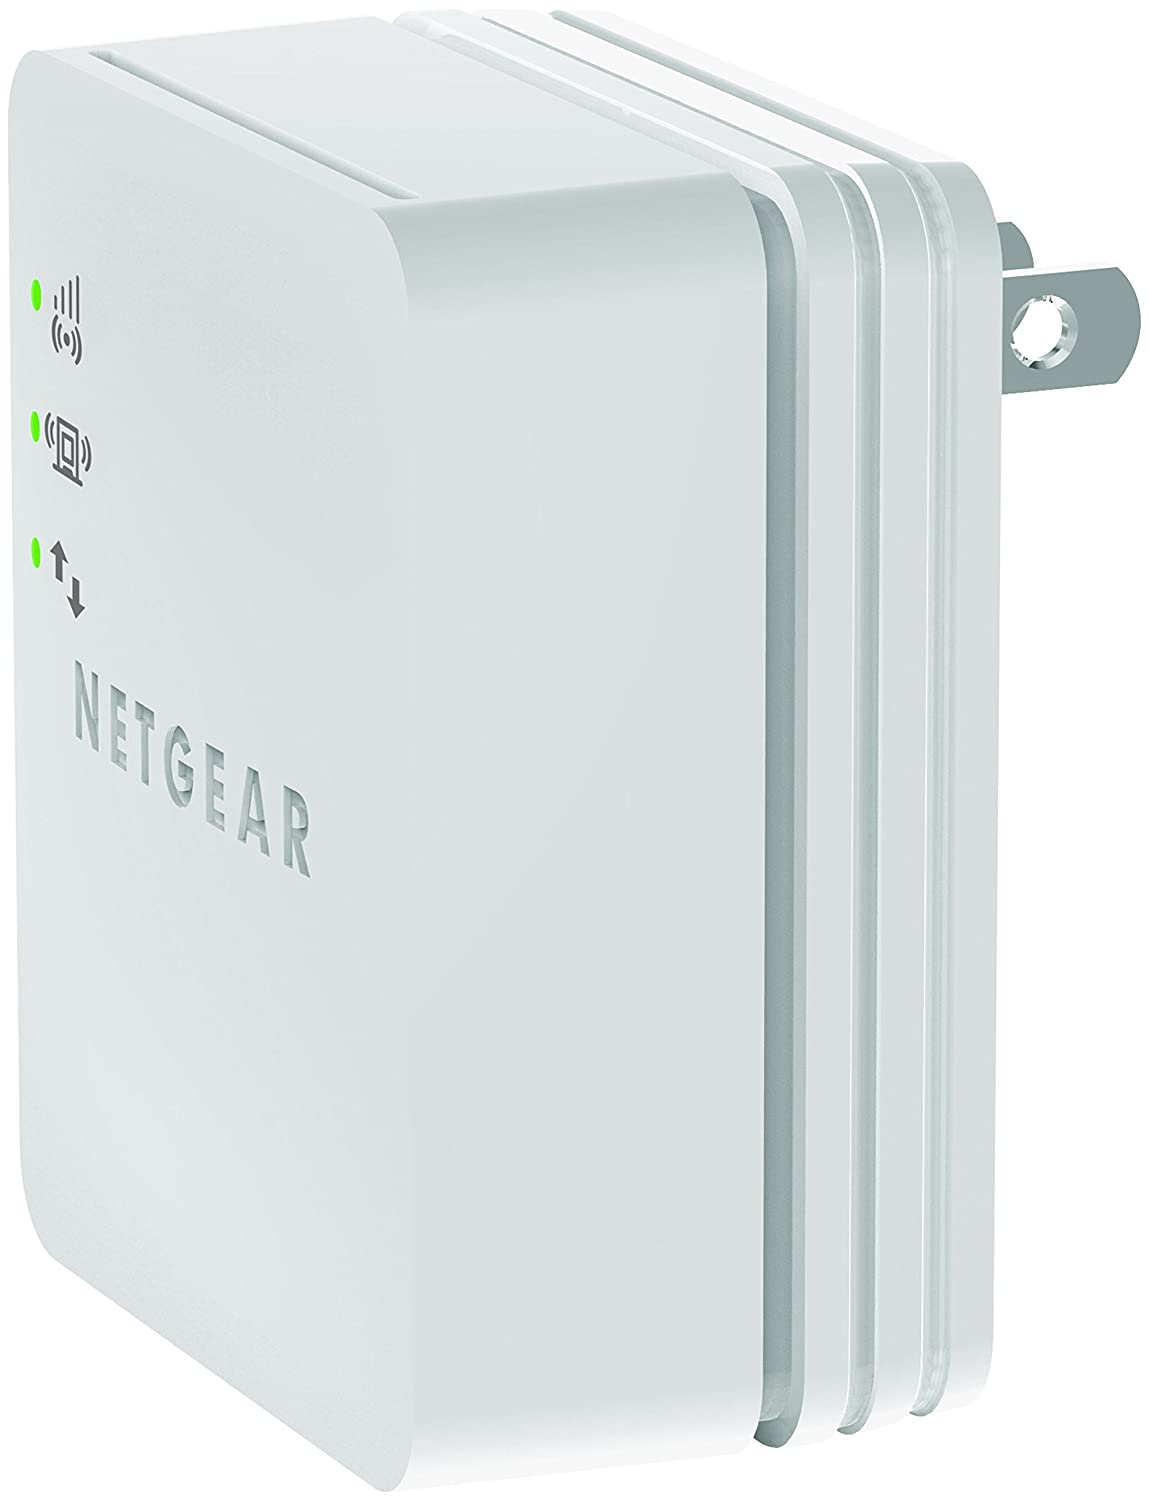 Netgear N150 Wi Fi Range Extender For Mobile Wall Plug How To Extend Wireless Internet Full Coverage In Large Homes Version Wn1000rp Computers Accessories